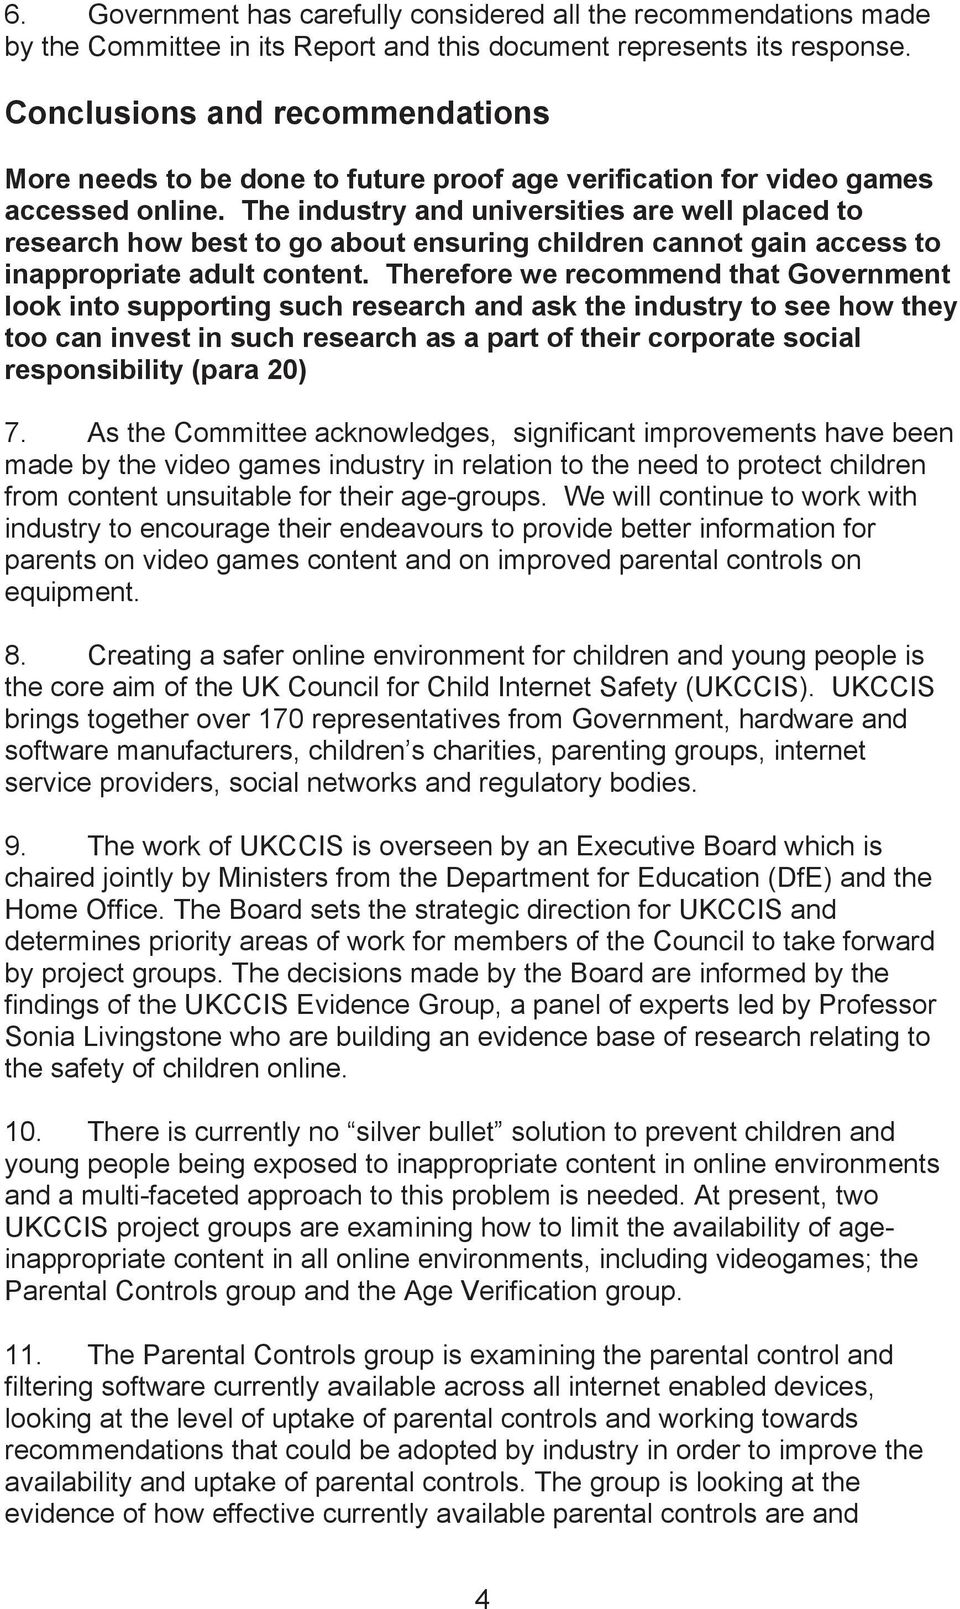 The industry and universities are well placed to research how best to go about ensuring children cannot gain access to inappropriate adult content.